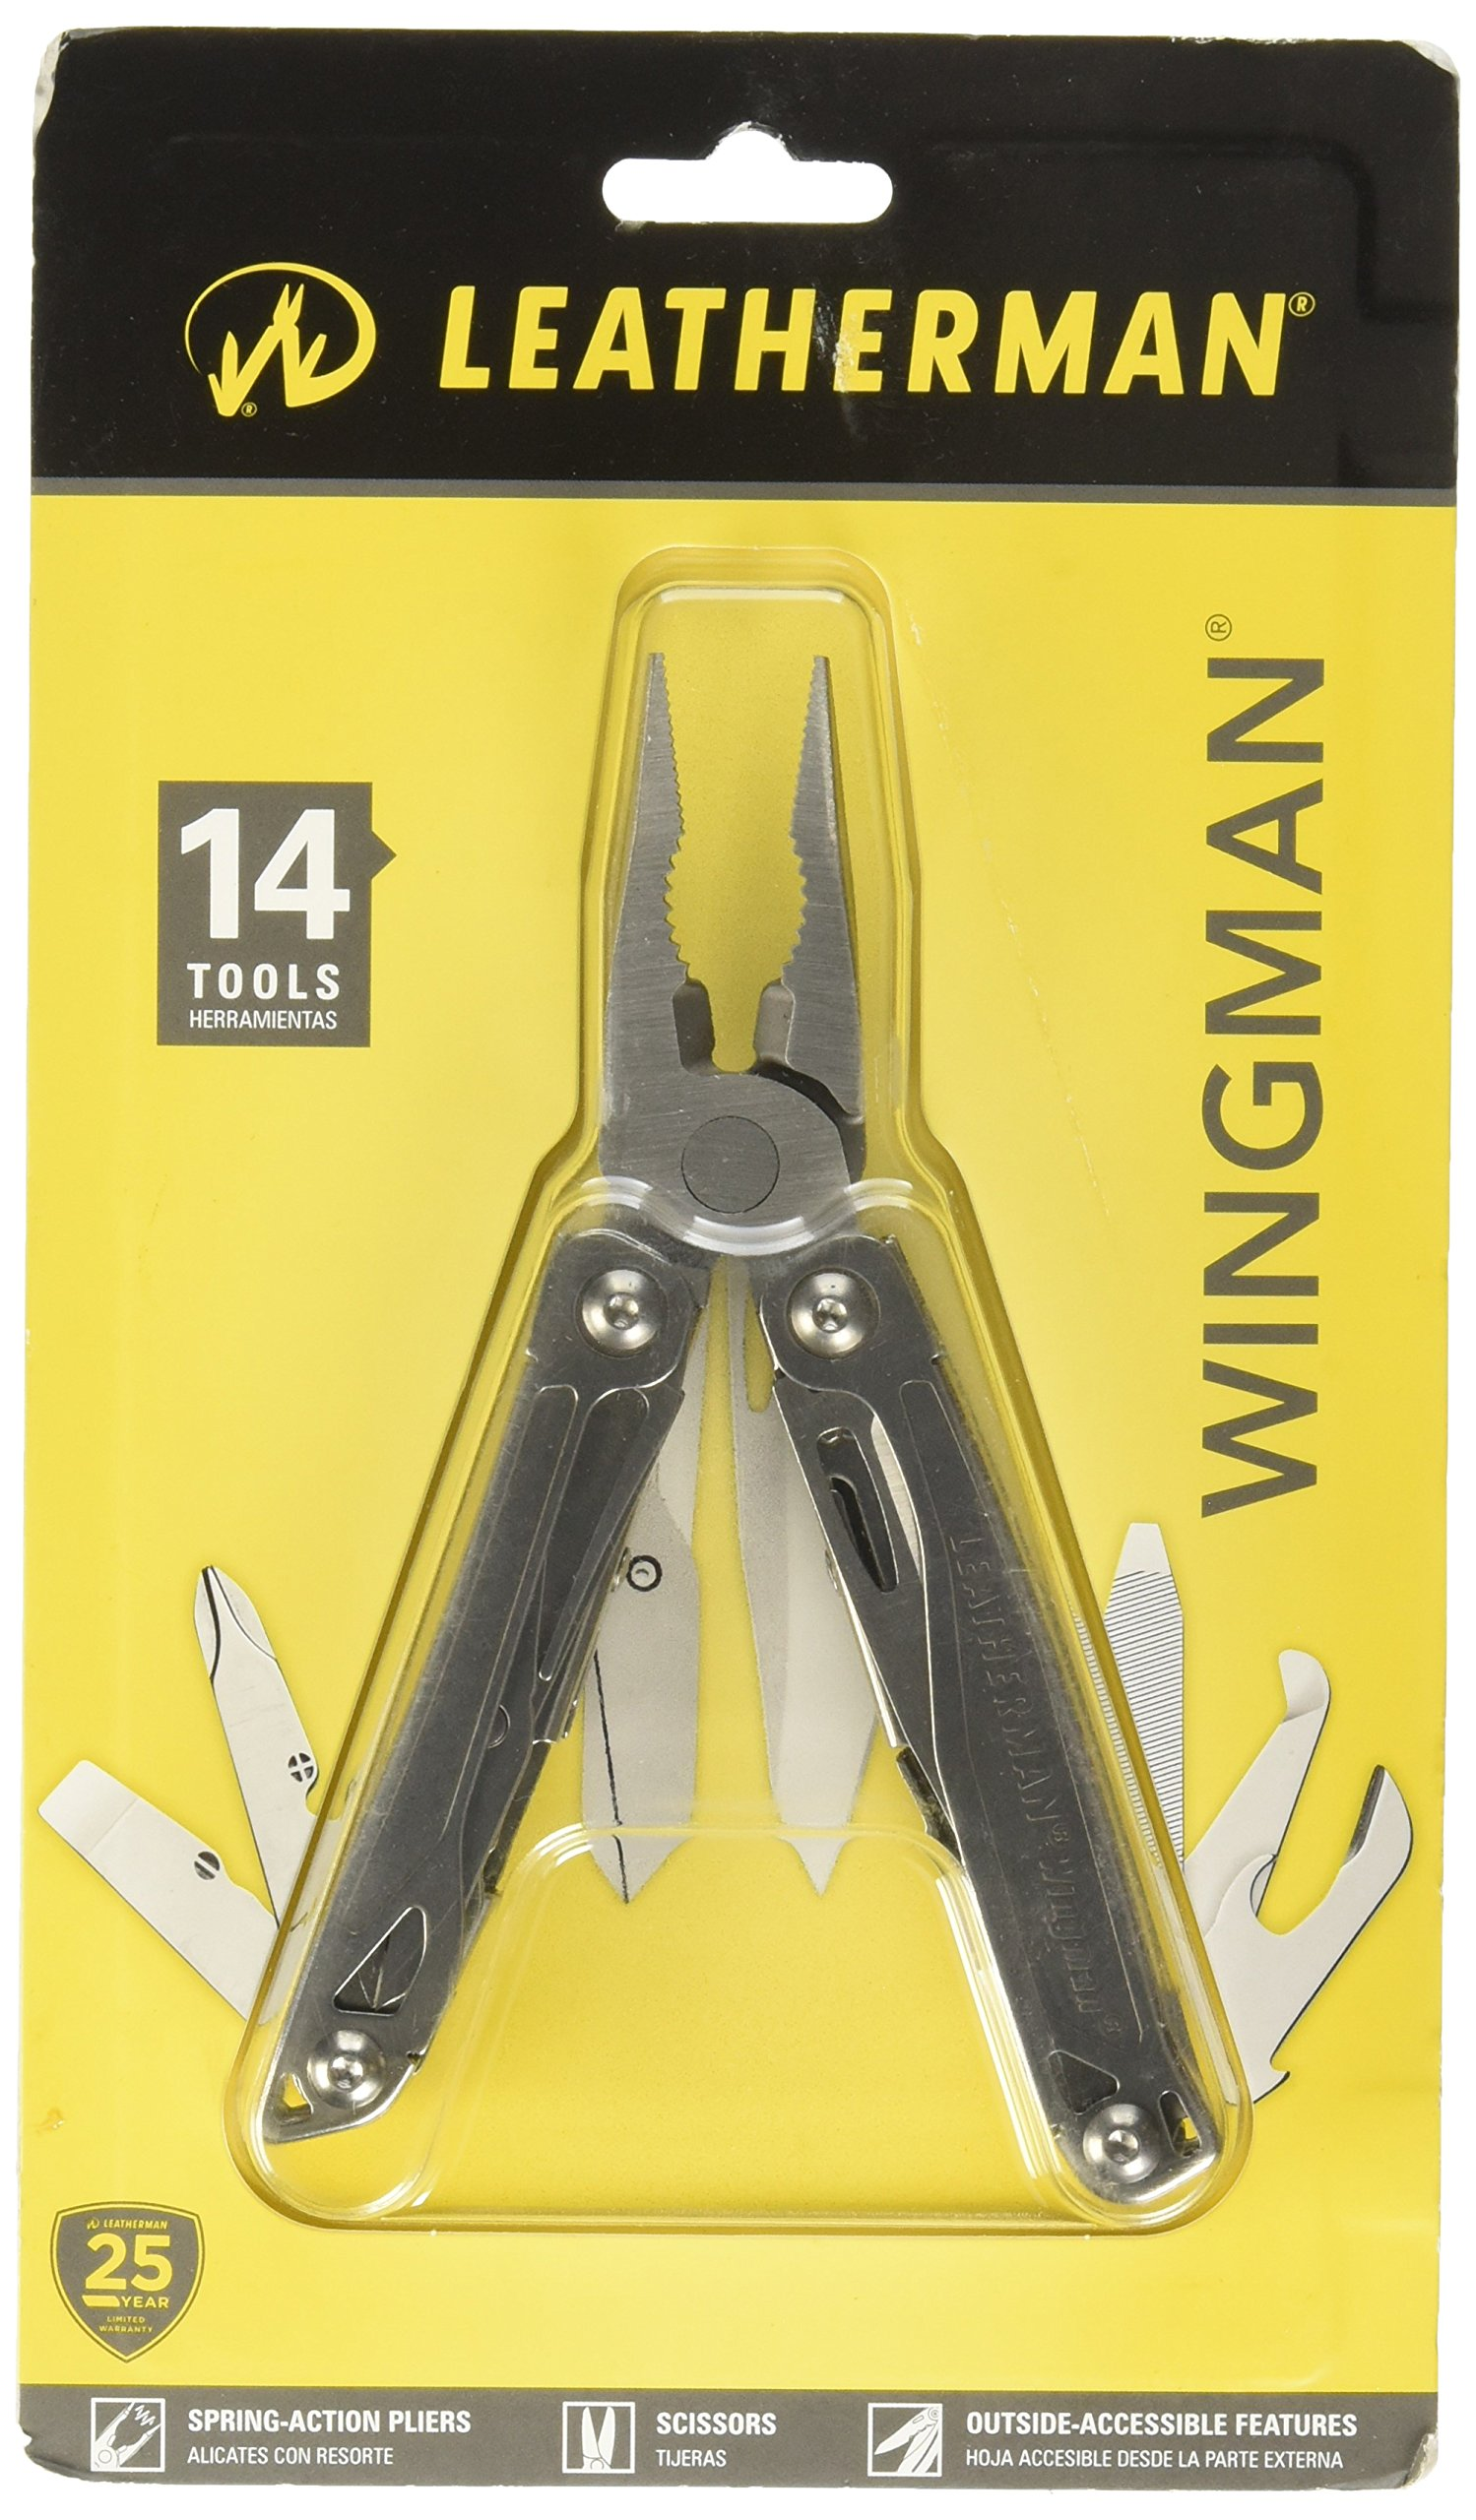 Leatherman (831425) Wingman Multi-Tool, Silver, 14 Piece Set product image